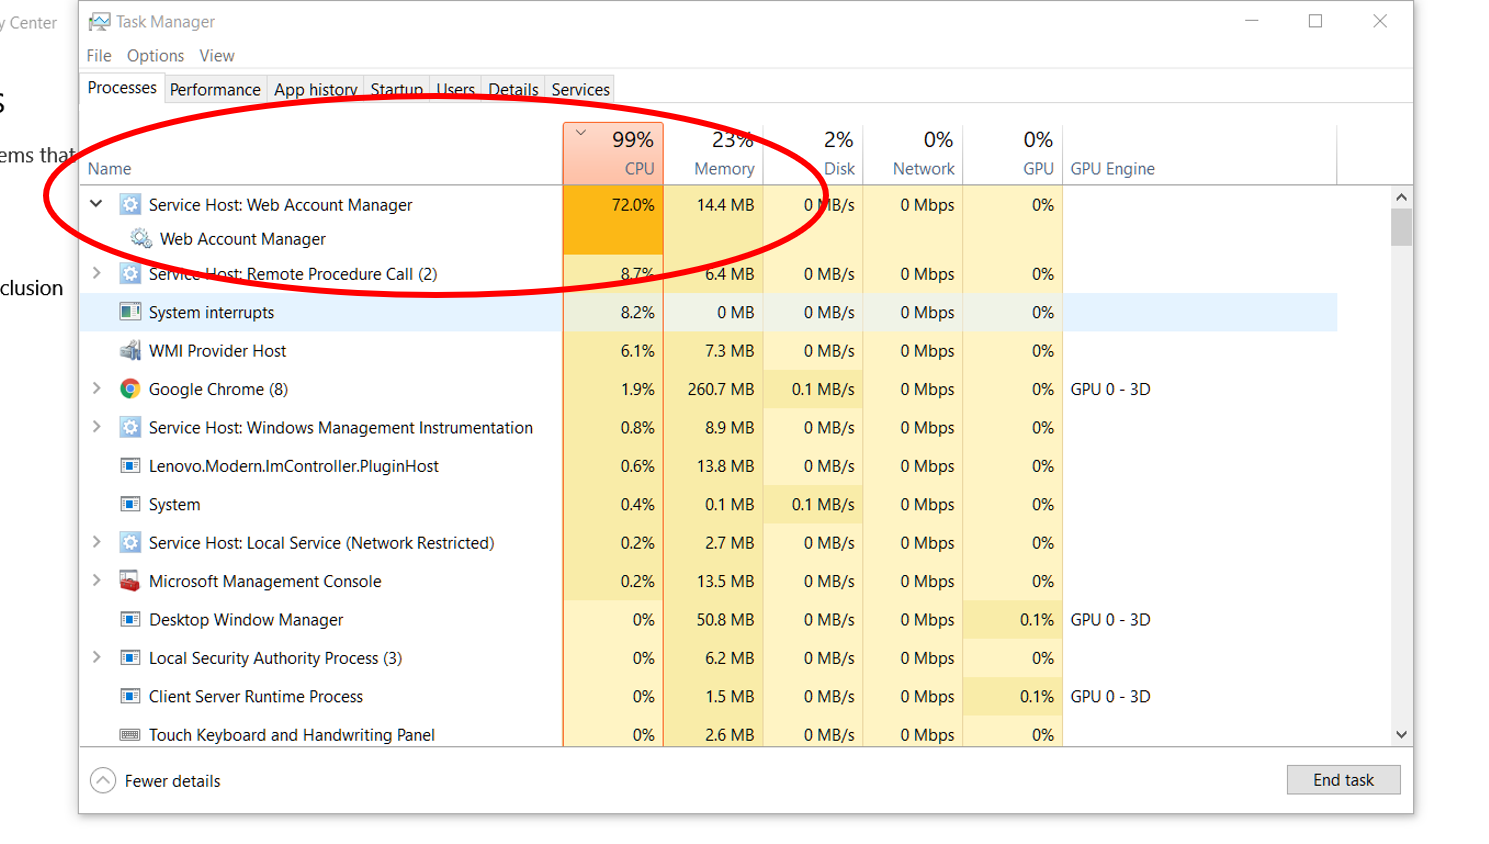 Service Host: Web Account Manager using 70+% of CPU - Microsoft